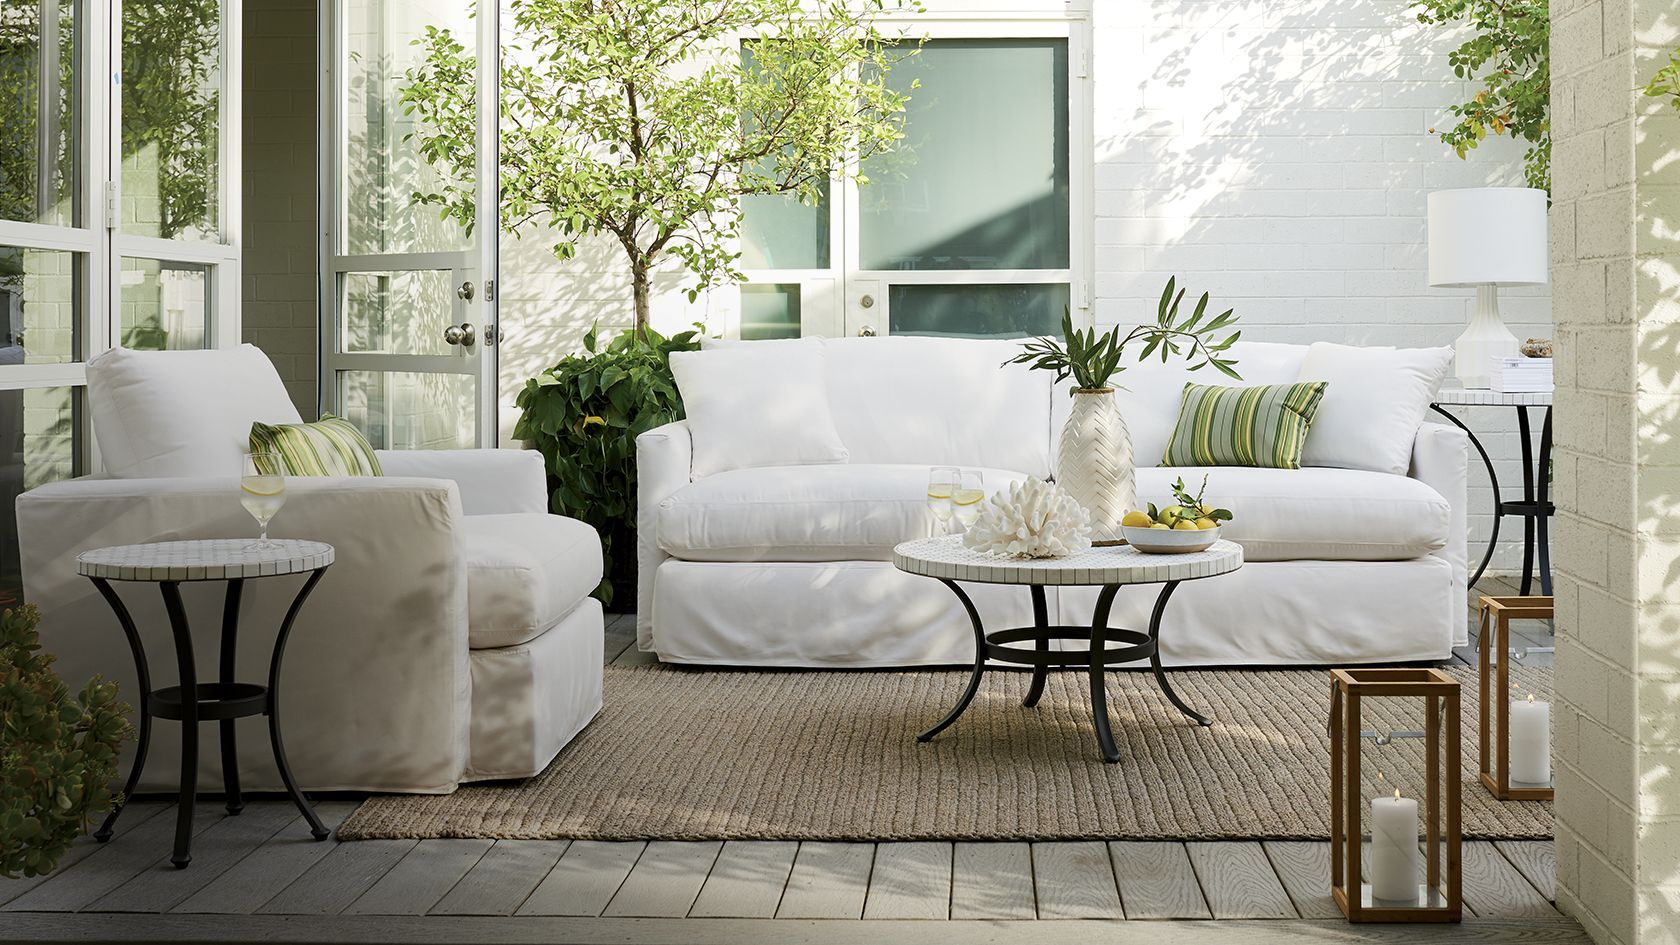 Crate And Barrel Patio Furniture. Outdoor Furniture And Patio Sets | Crate  Barrel P